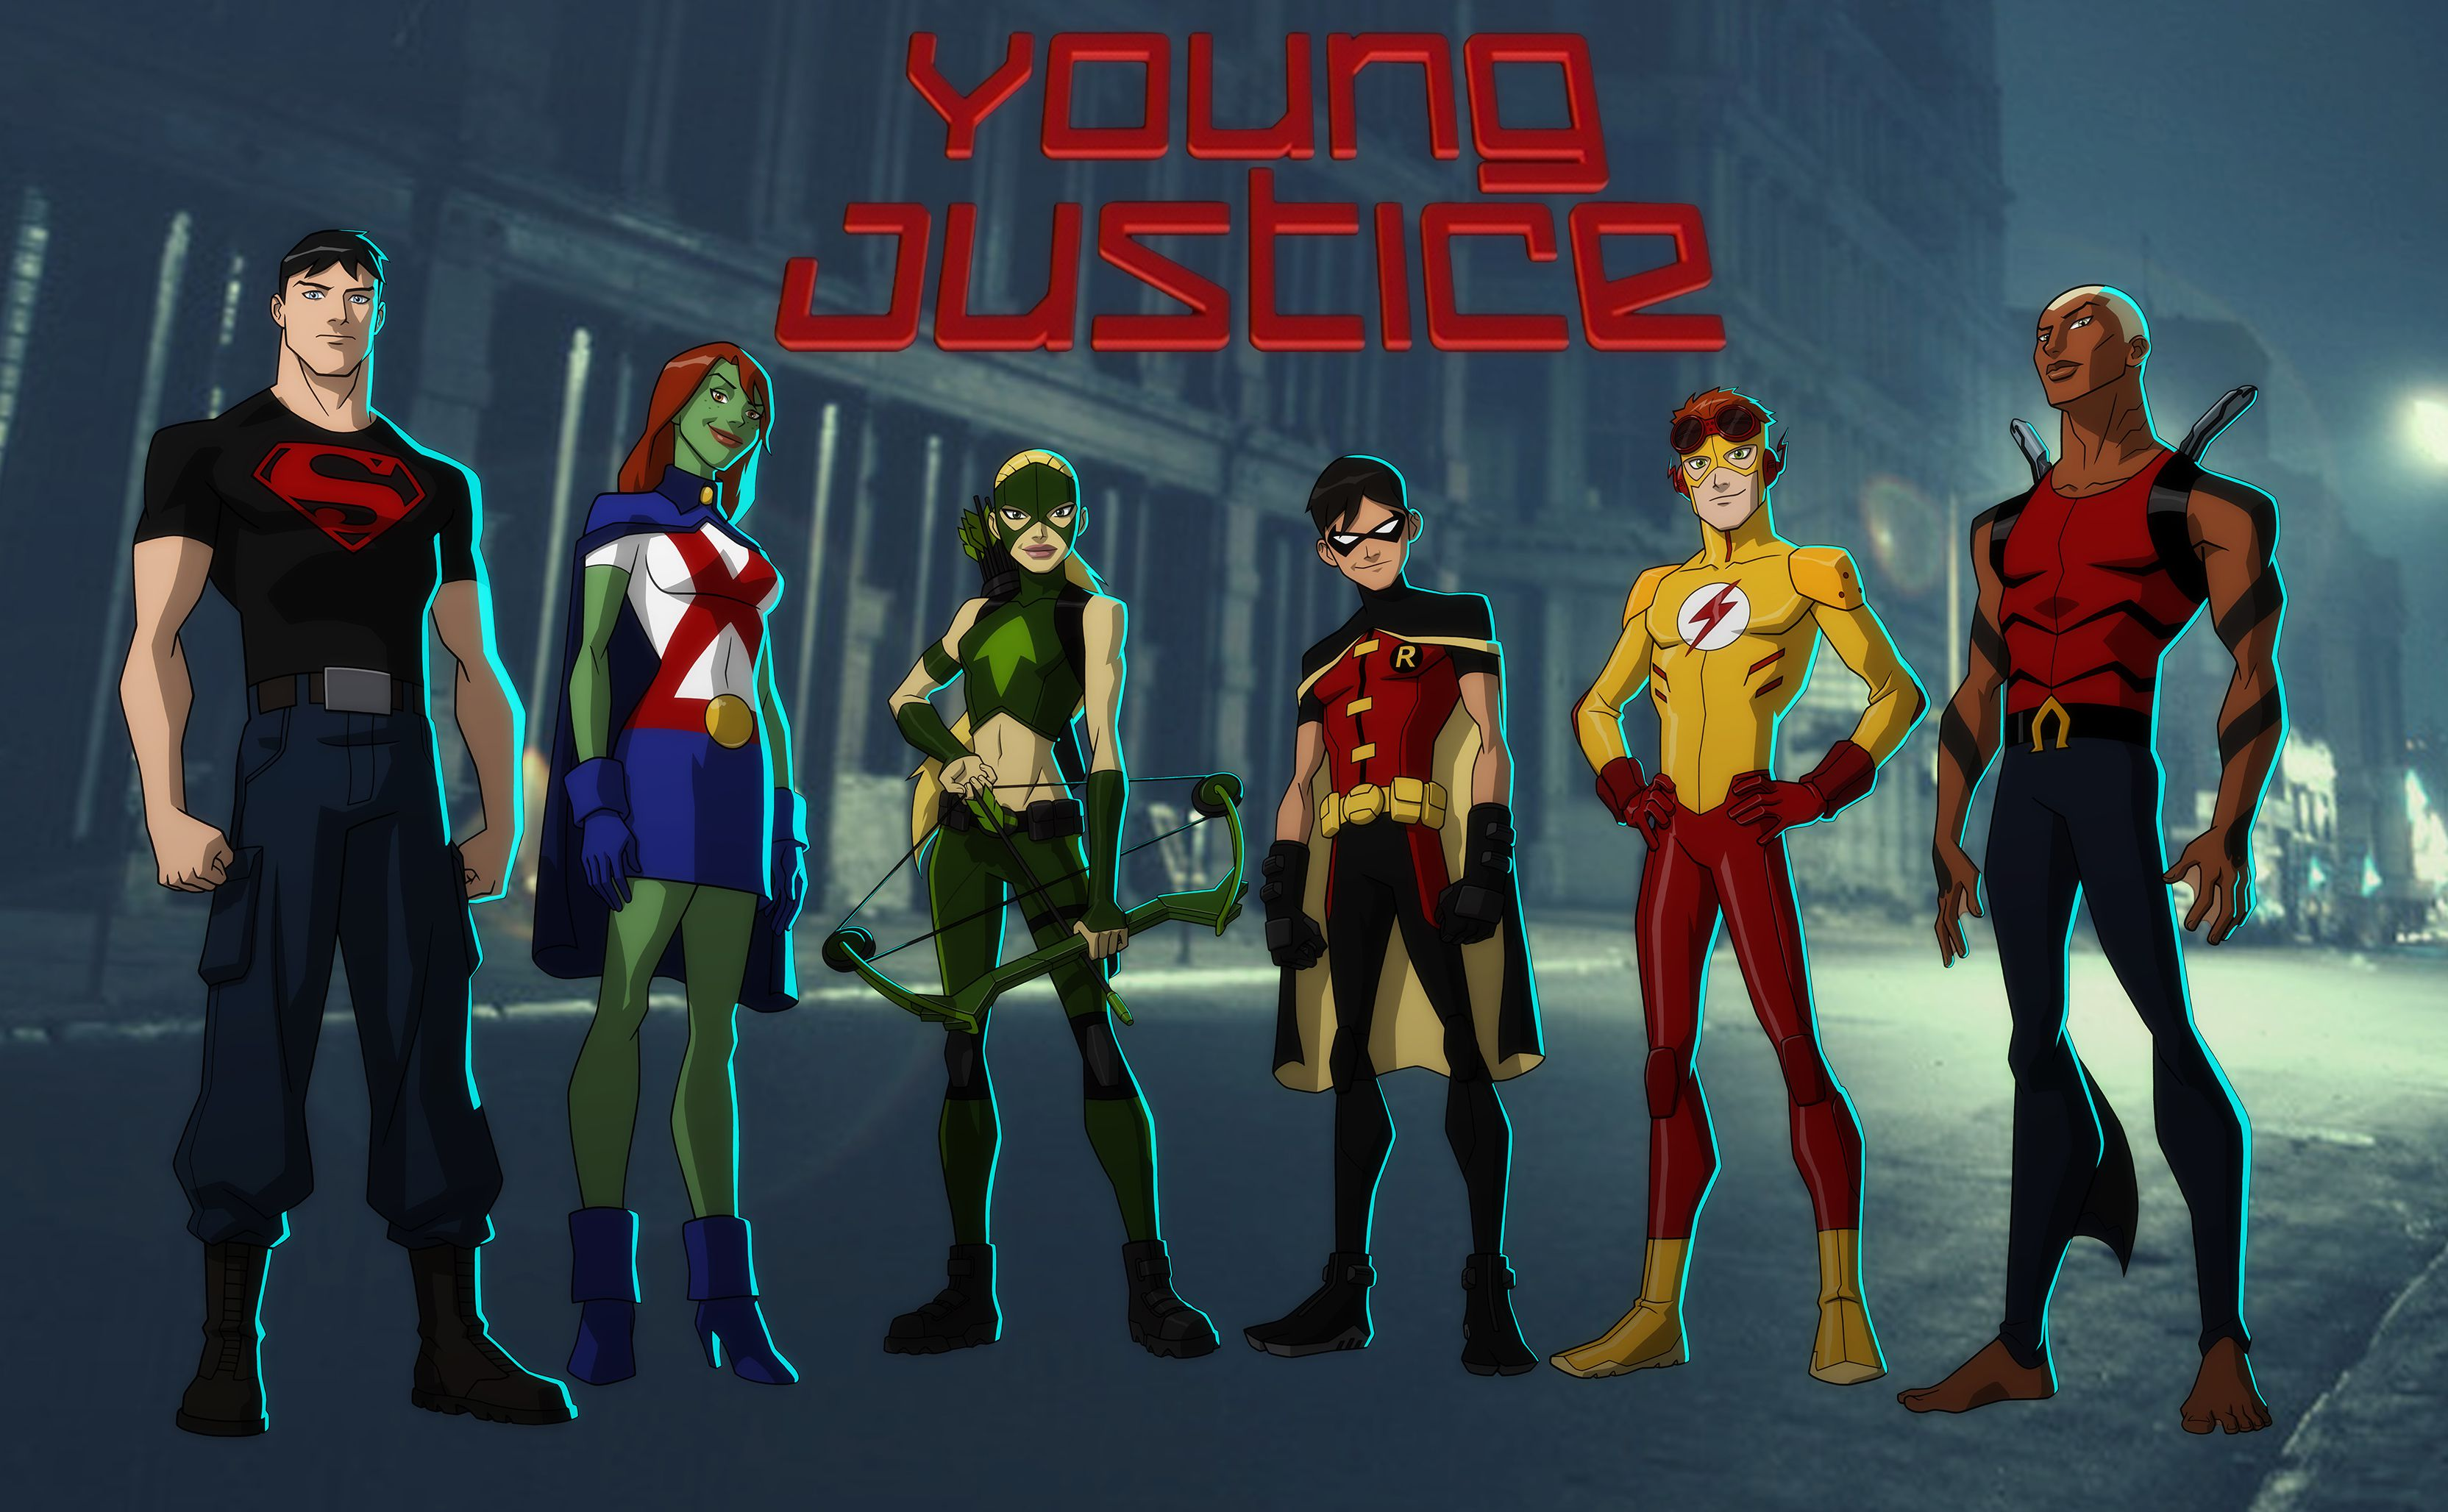 young justice Computer Wallpapers Desktop Backgrounds 3328x2056 3328x2056